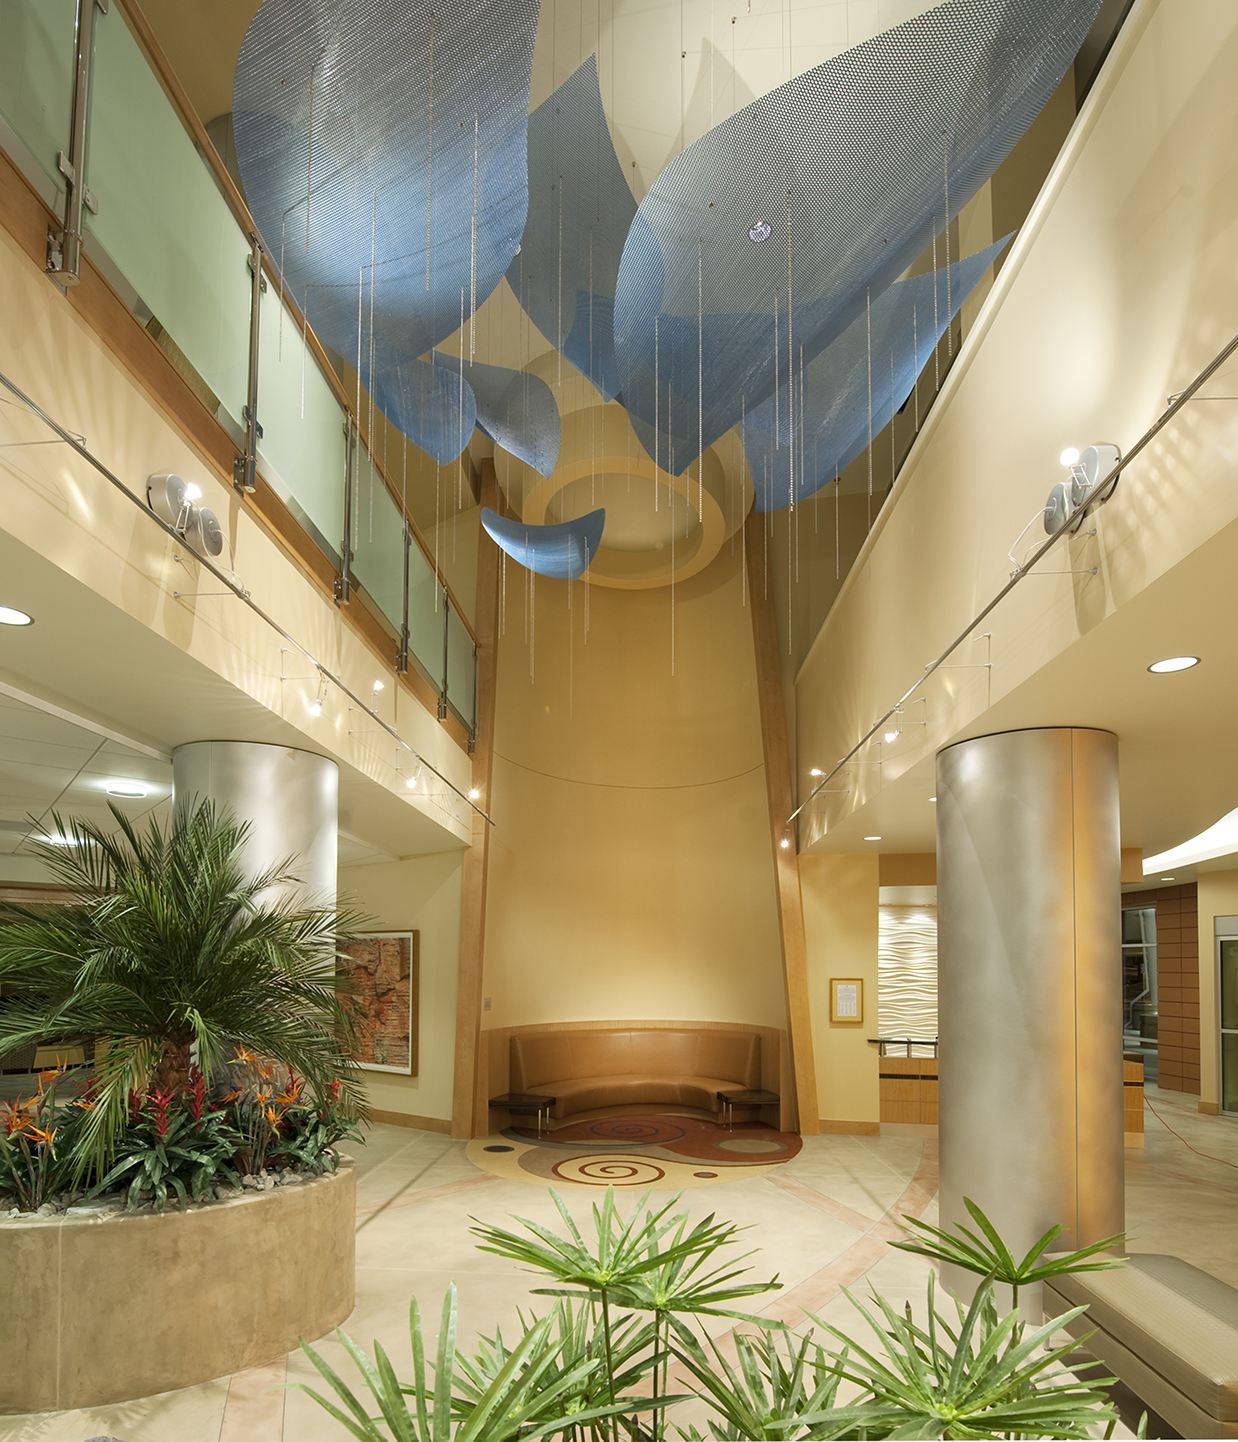 Talley Fisher's Crescendo healthcare art suspended sculpture in lobby of George and Julia Argyros Health Center